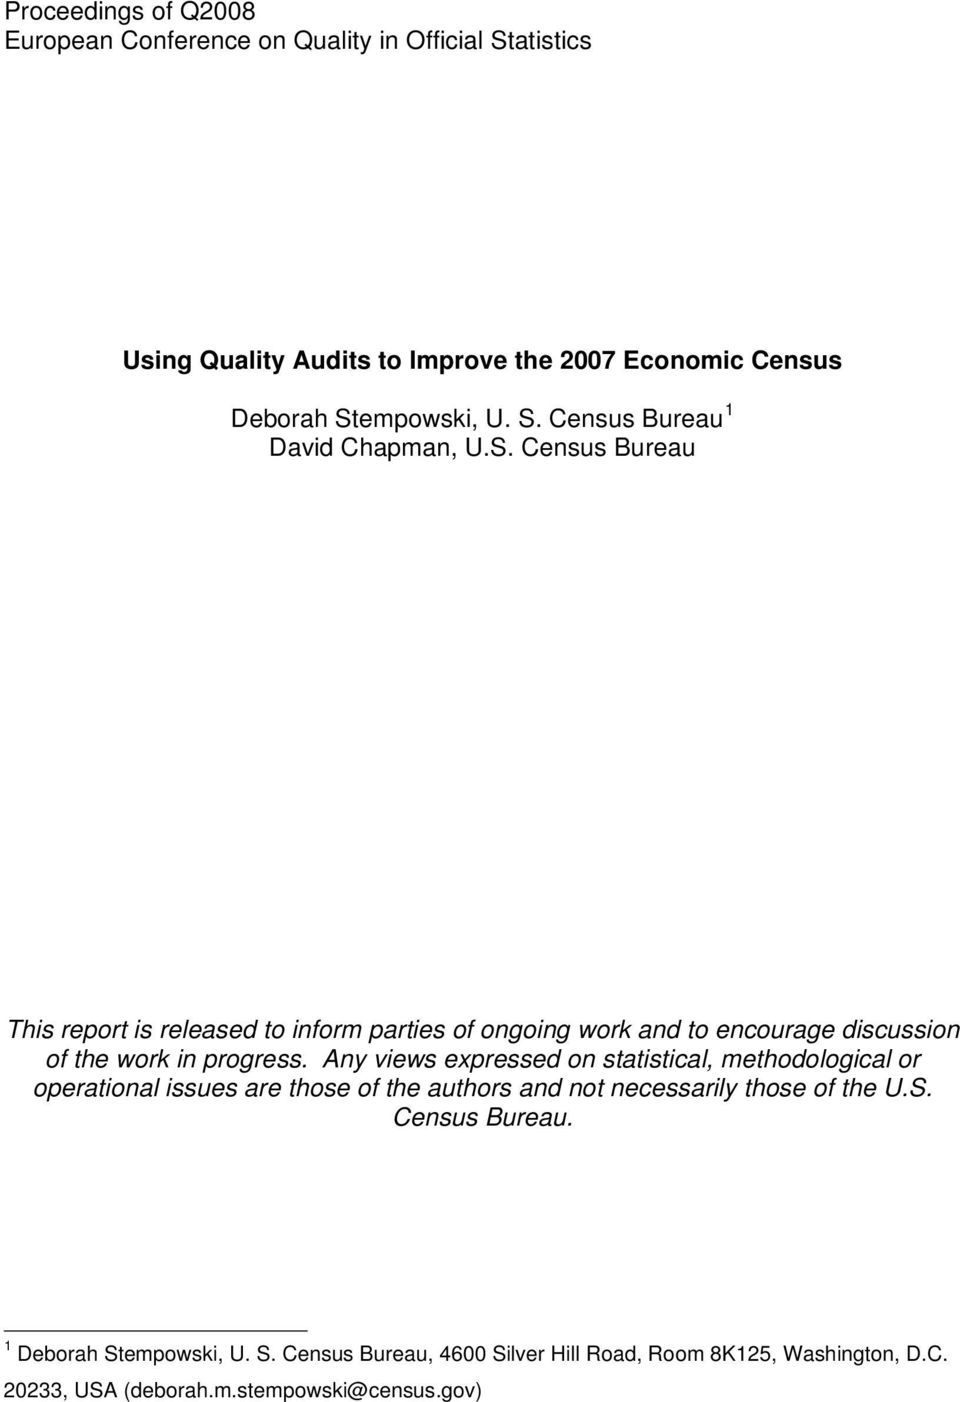 Any views expressed on statistical, methodological or operational issues are those of the authors and not necessarily those of the U.S. Census Bureau.